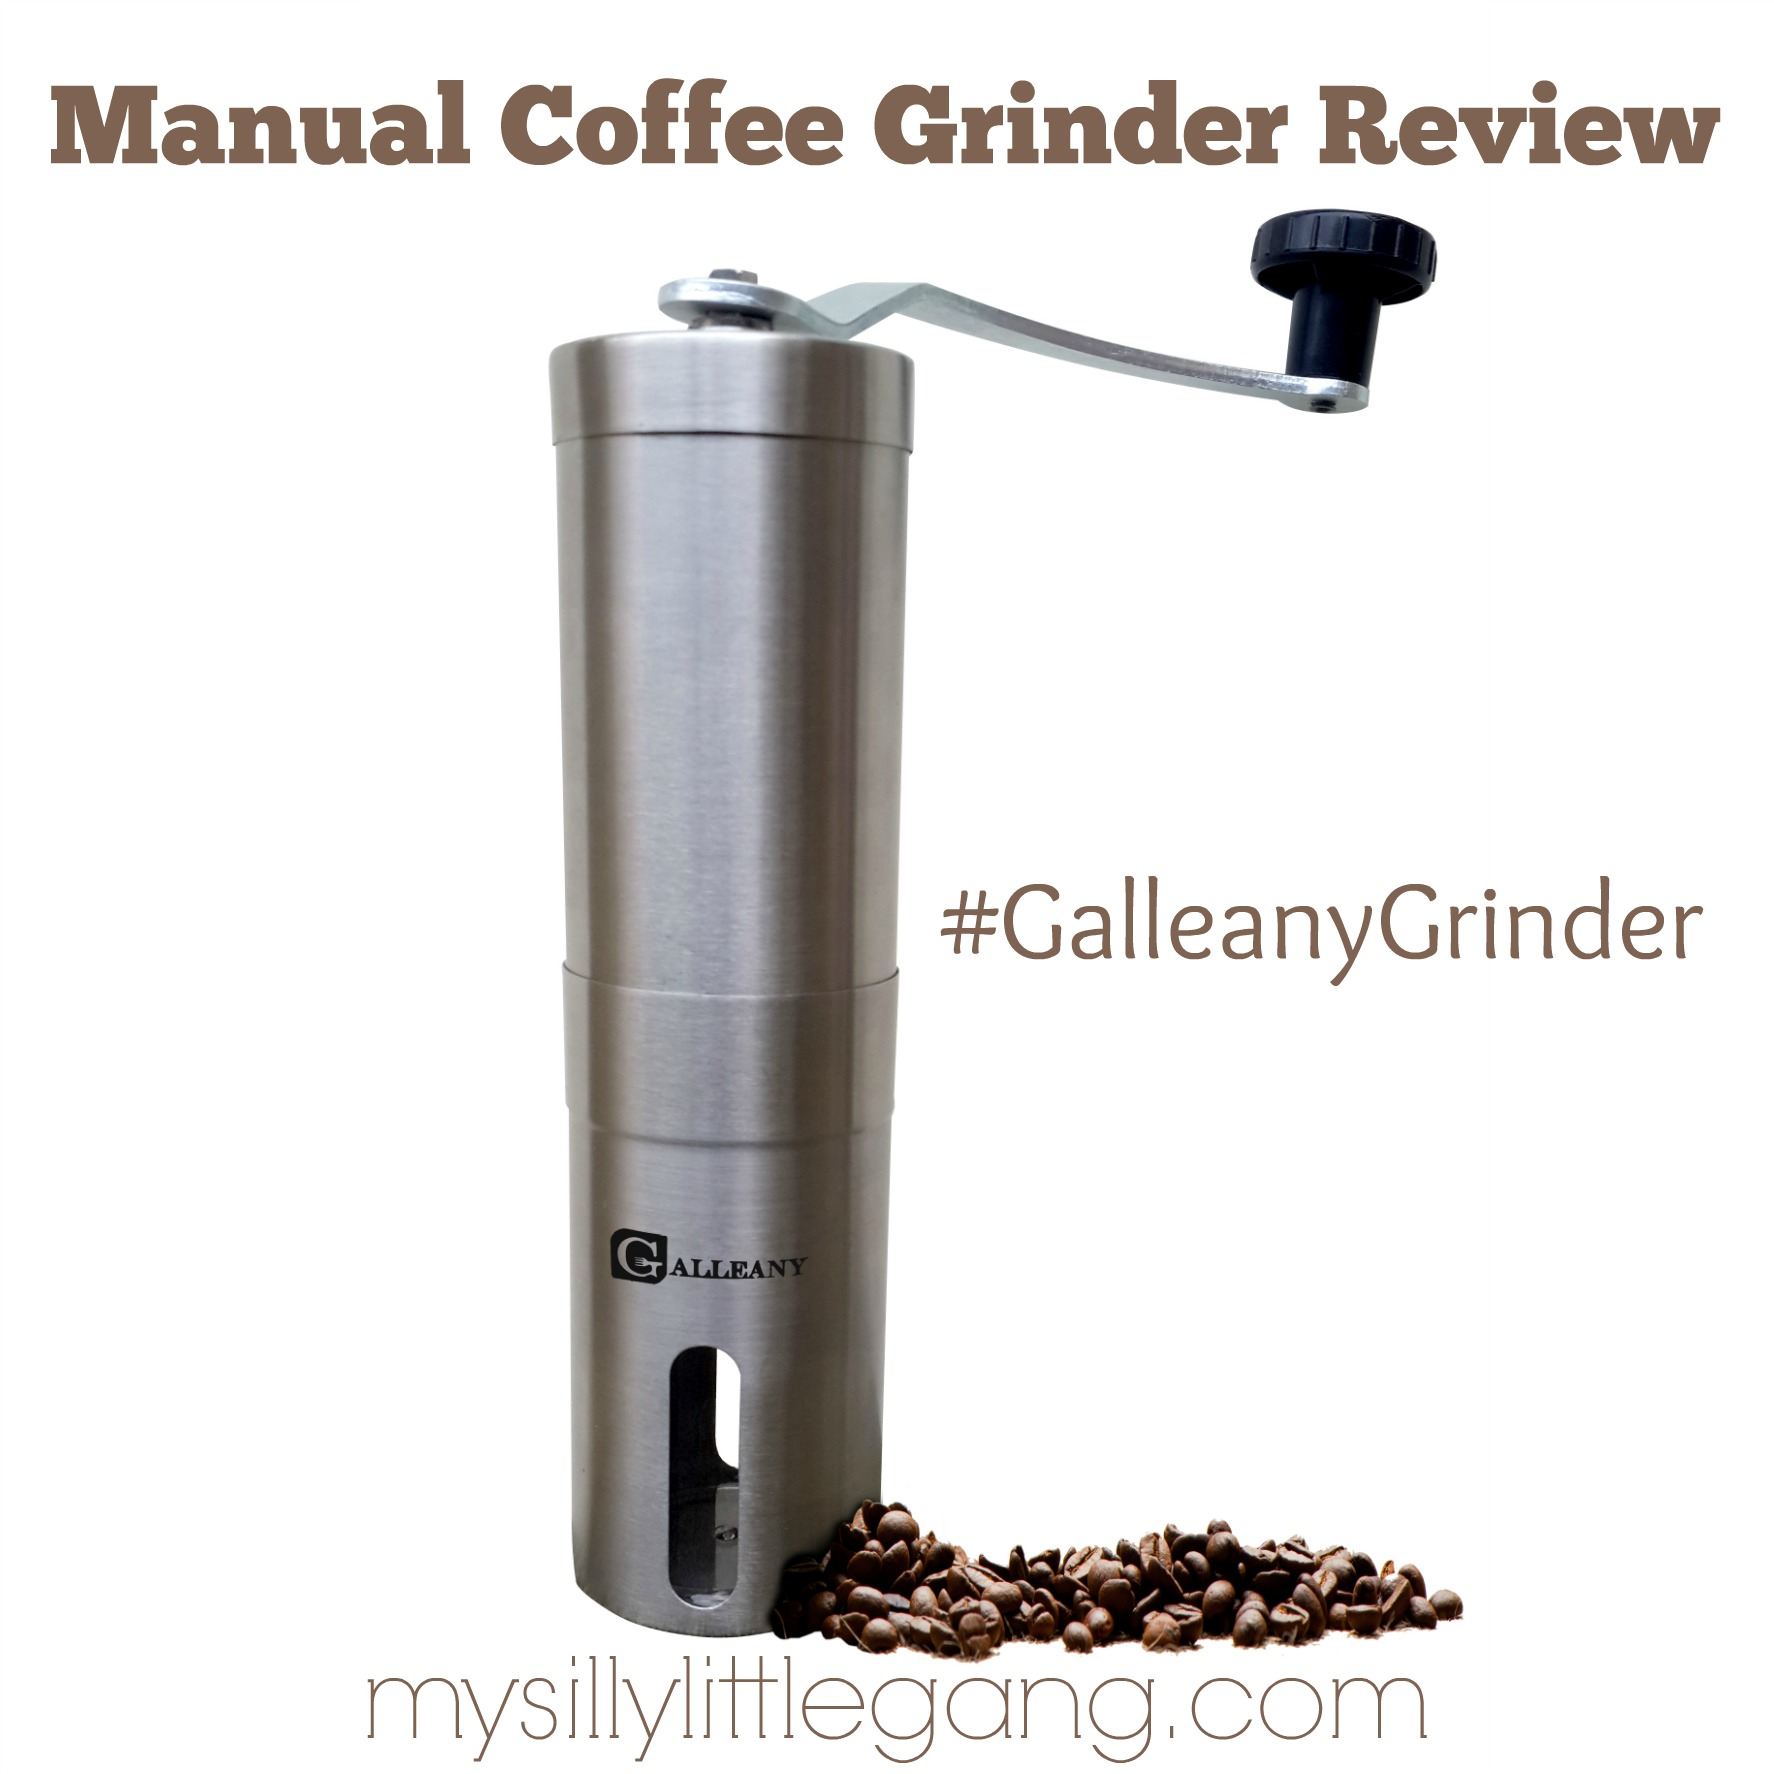 Melitta burr coffee grinder: see more details at walmart